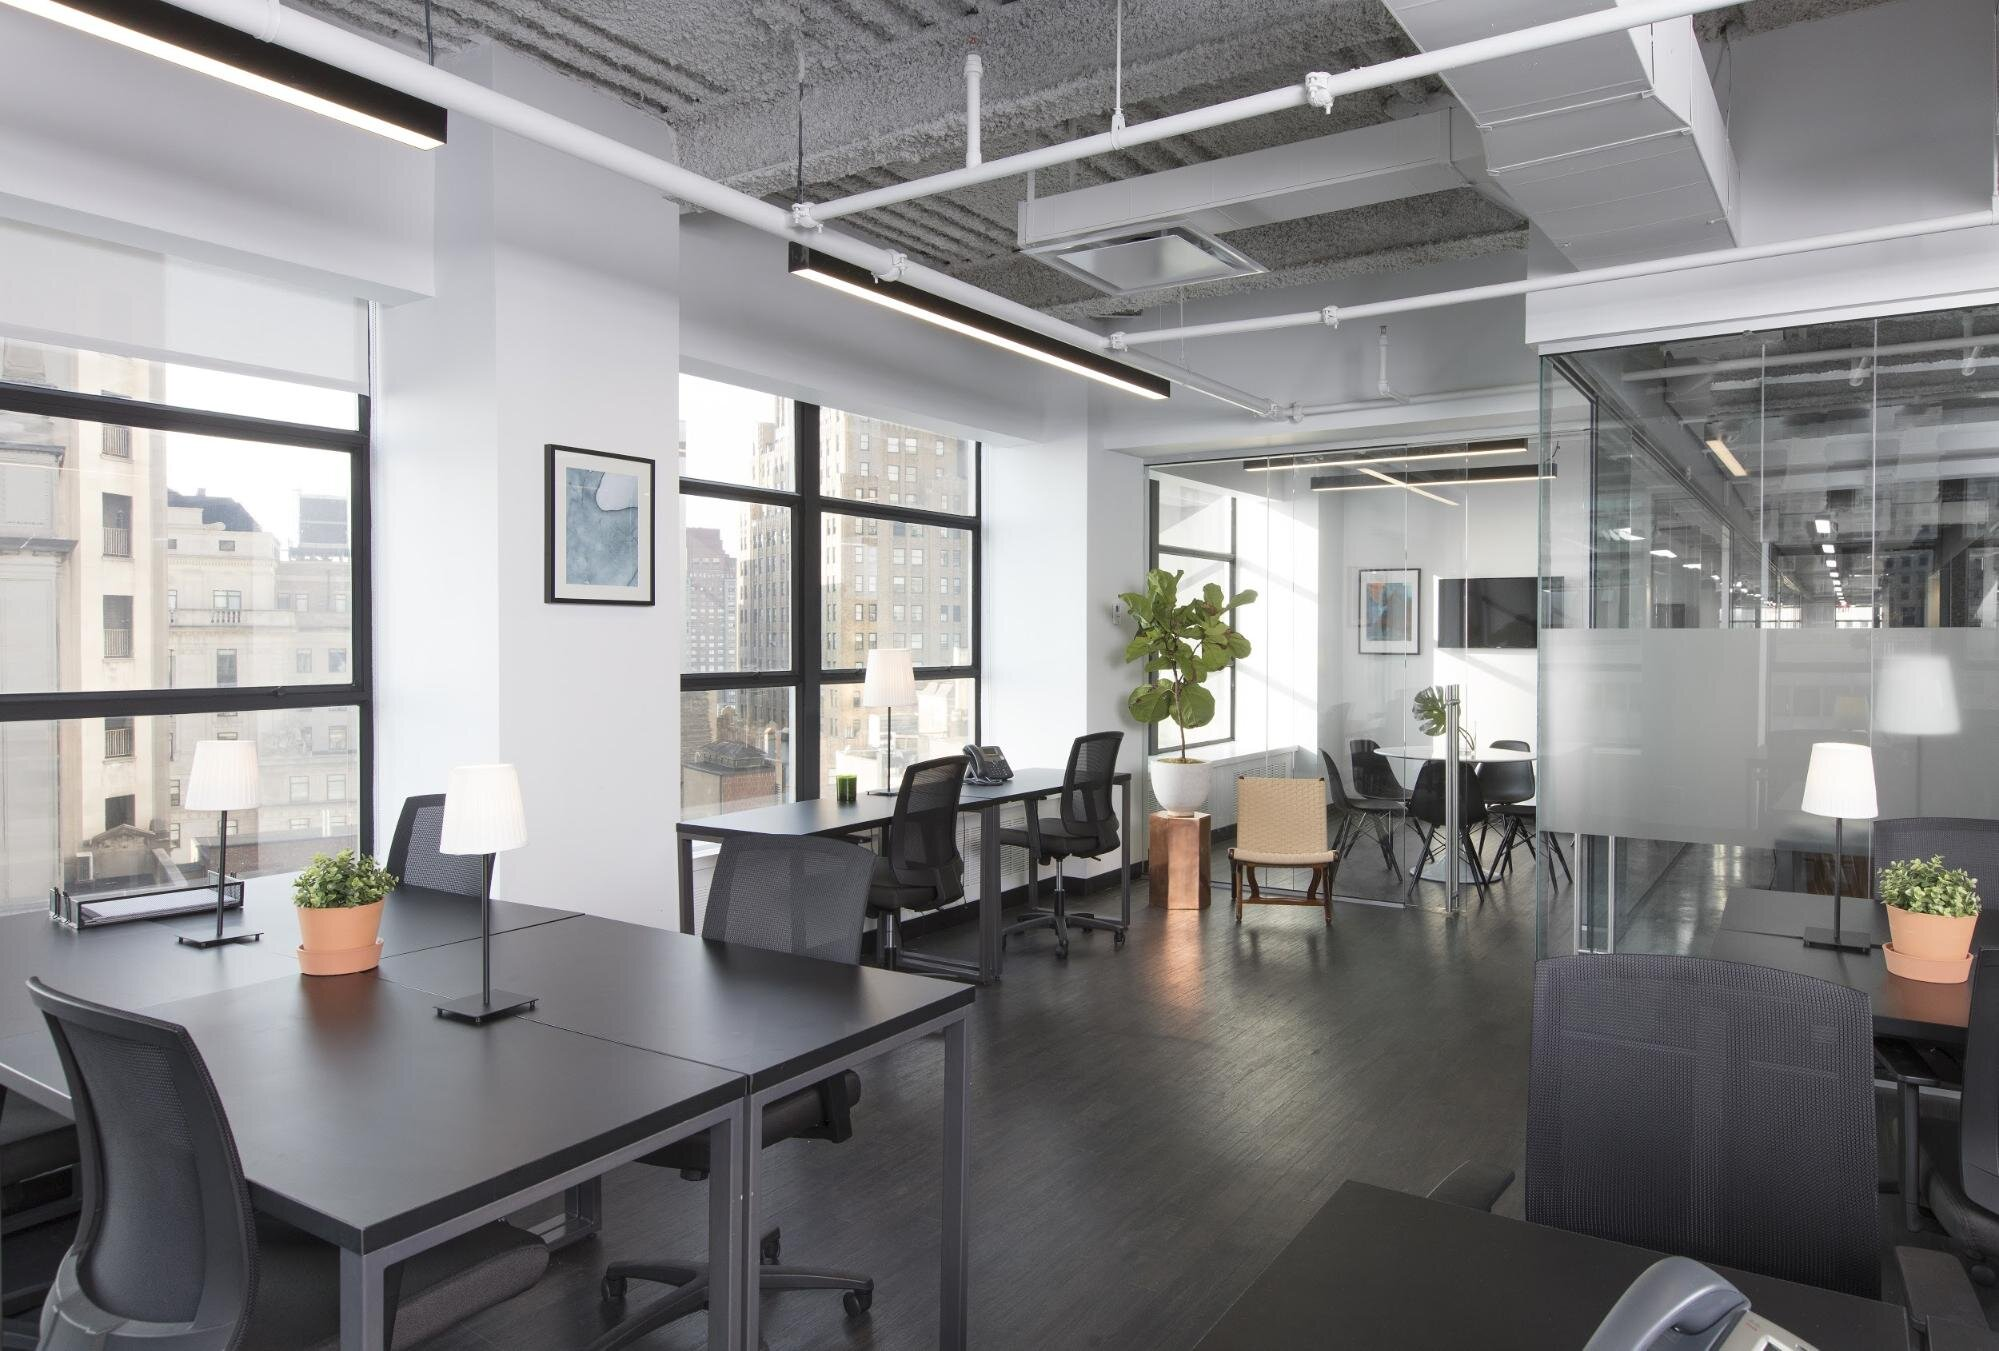 Bond Collective's shared working environment